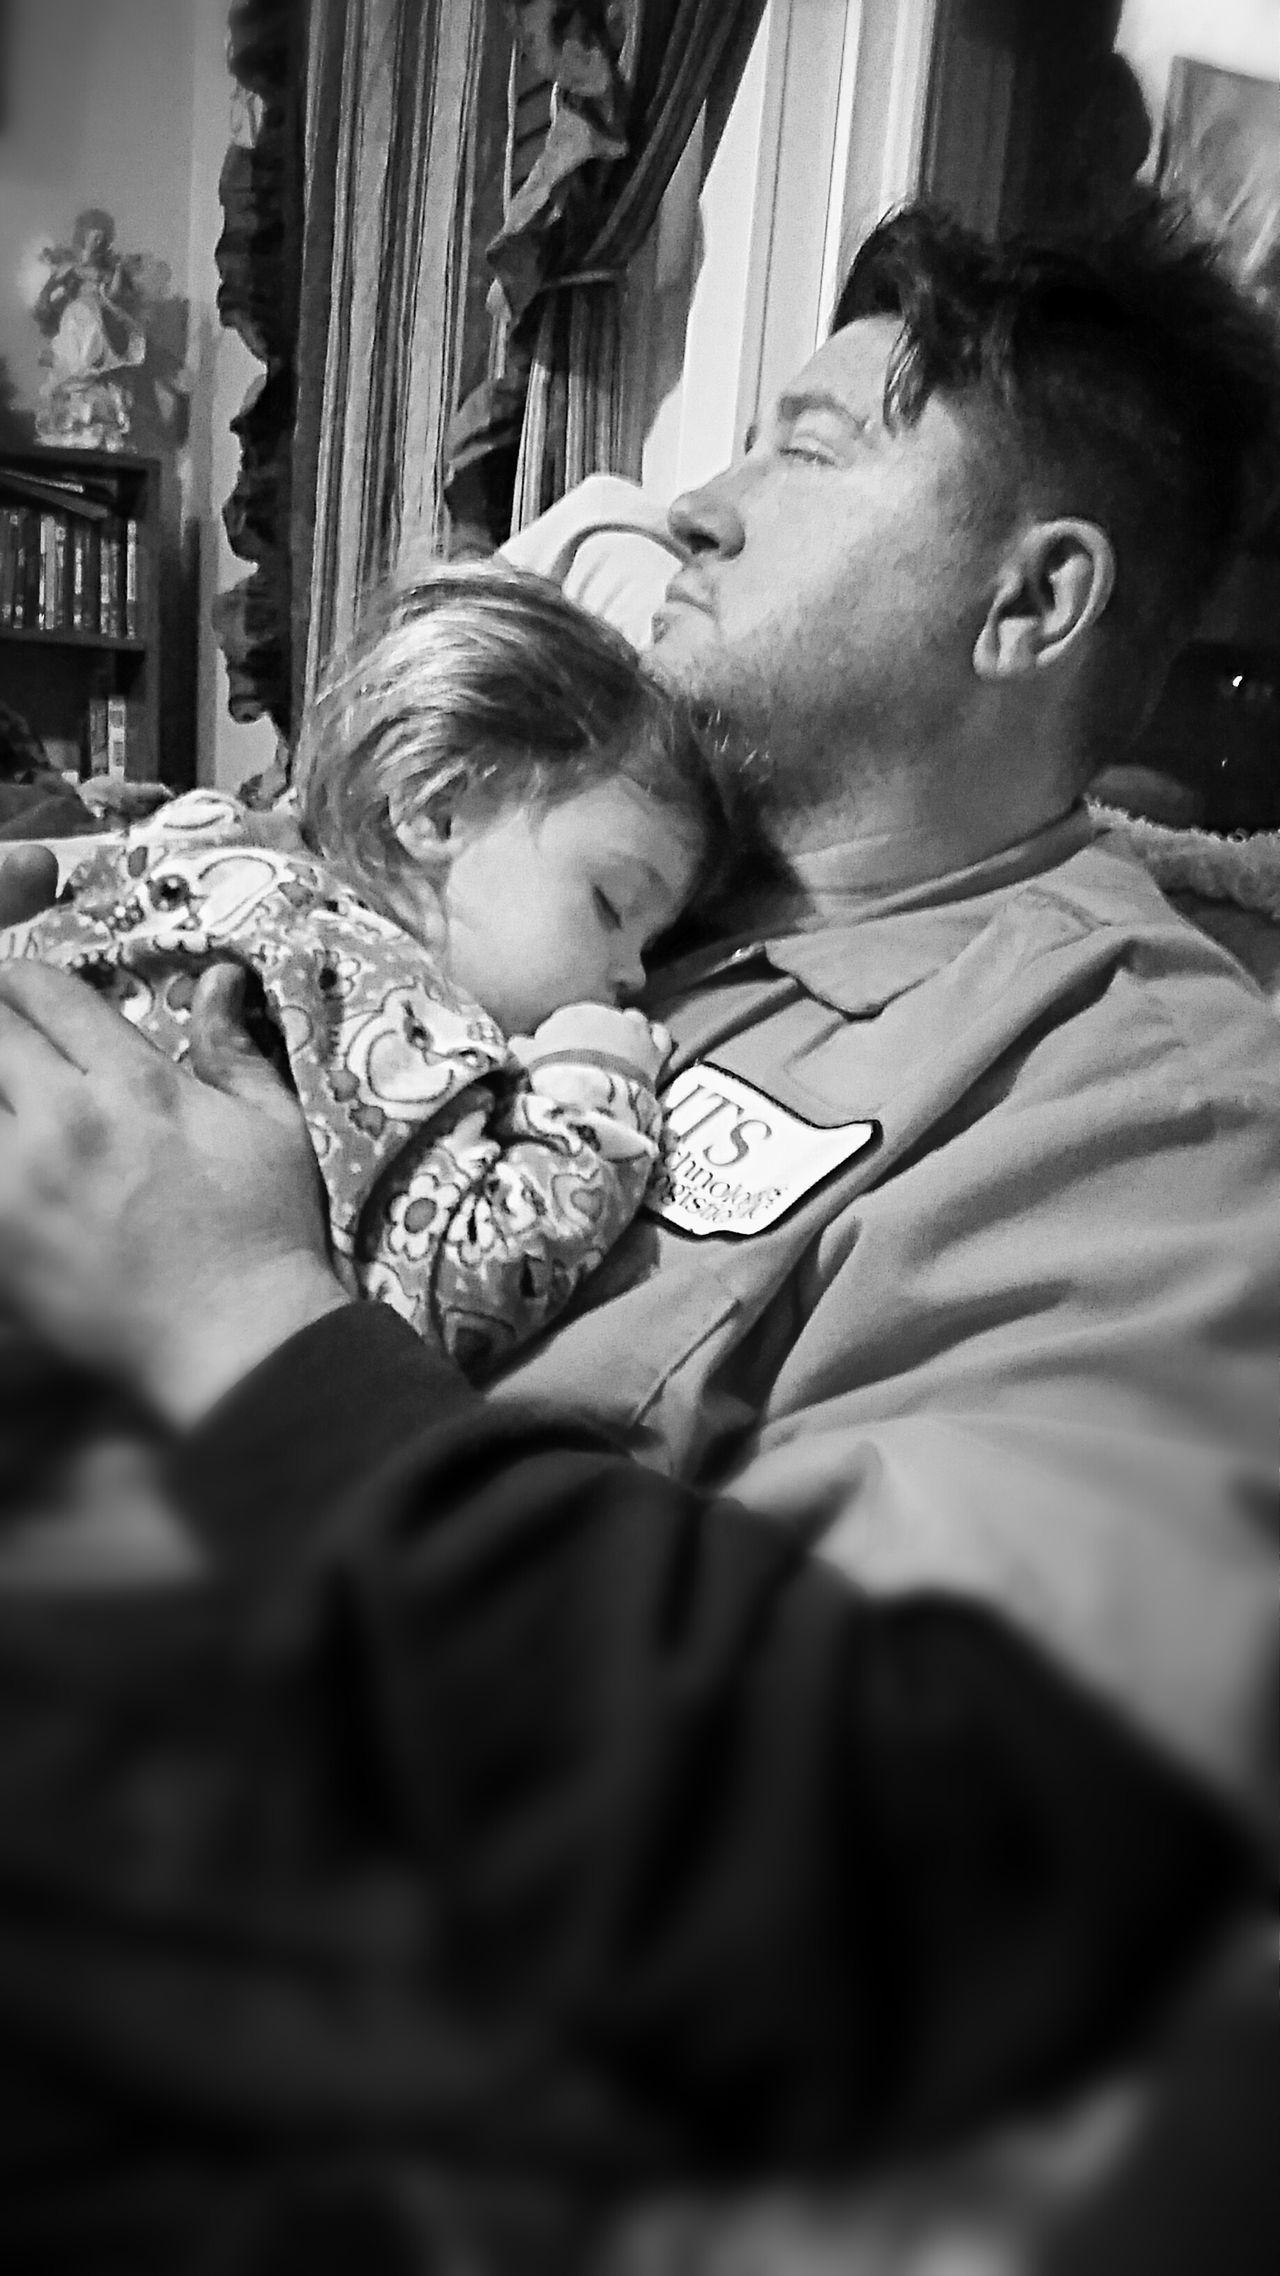 Daughterlove Daughter Lying Down Baby Girl Fatherhood Moments Father And Daughter Fatherhood  Sick And Cute